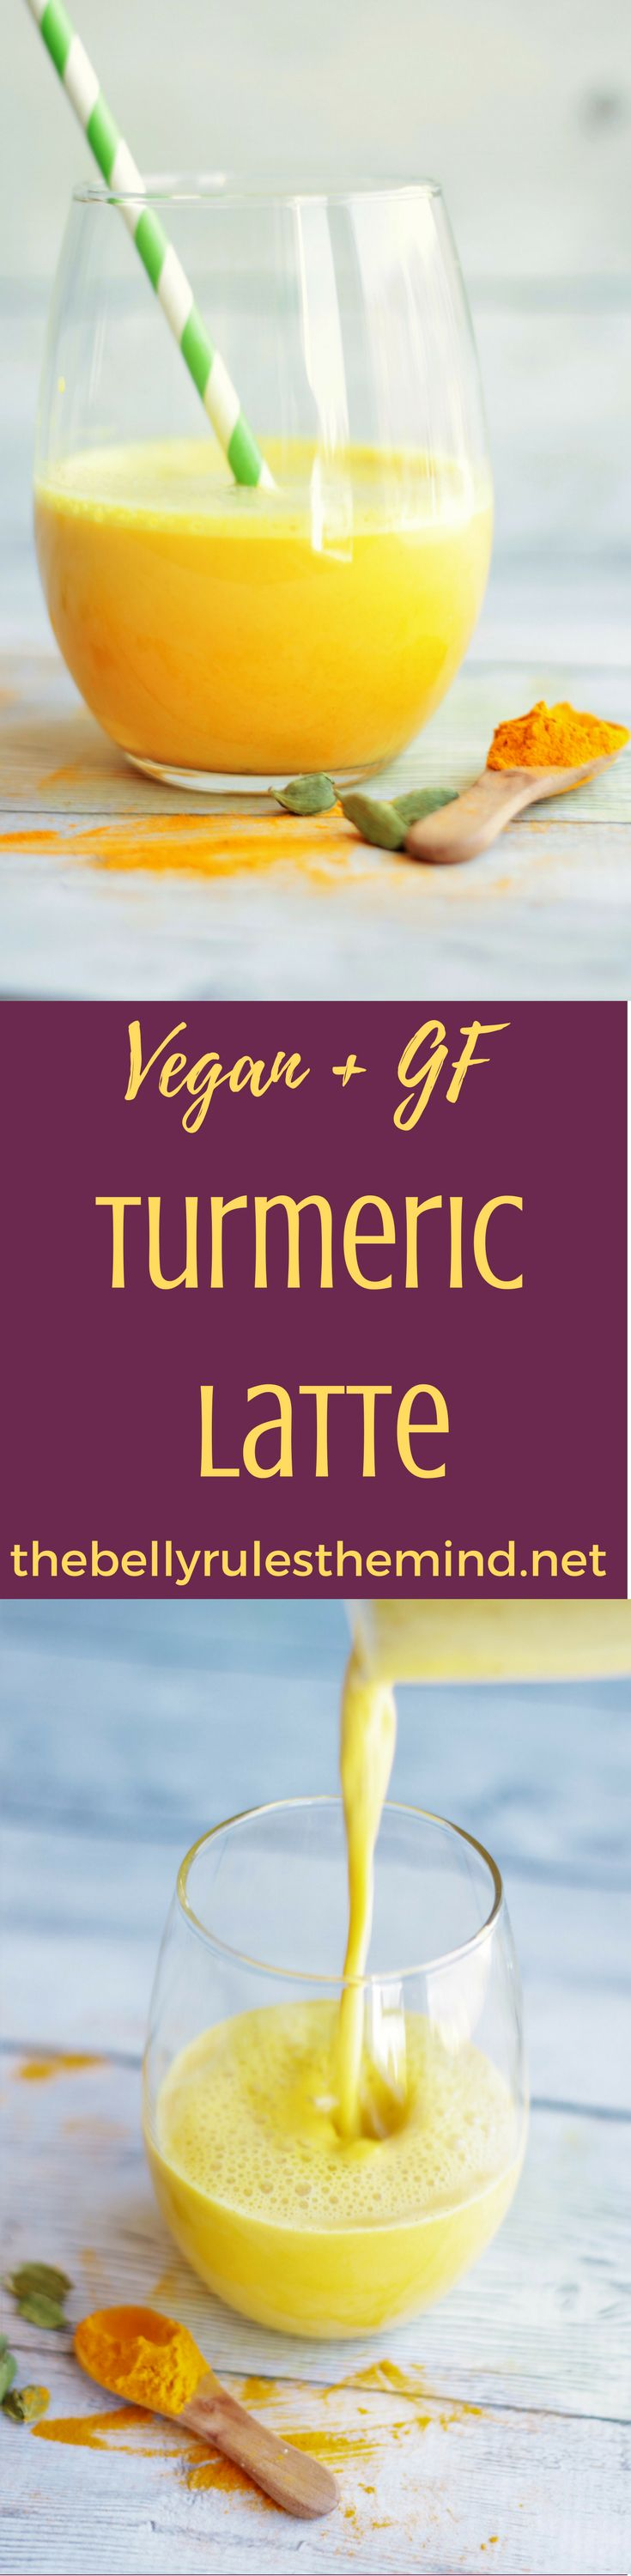 Fight Cold & Flu while enjoying the health benefits of Turmeric with this warm Turmeric Latte / Golden Milk / Haldi Doodh |www.thebellyrulesthemind.net @bellyrulesthemind #recipes #haldi #turmeric #goldenmilk #turmericlatte #haldidoodh #kidfriendly #coldandflu #healthbenefits